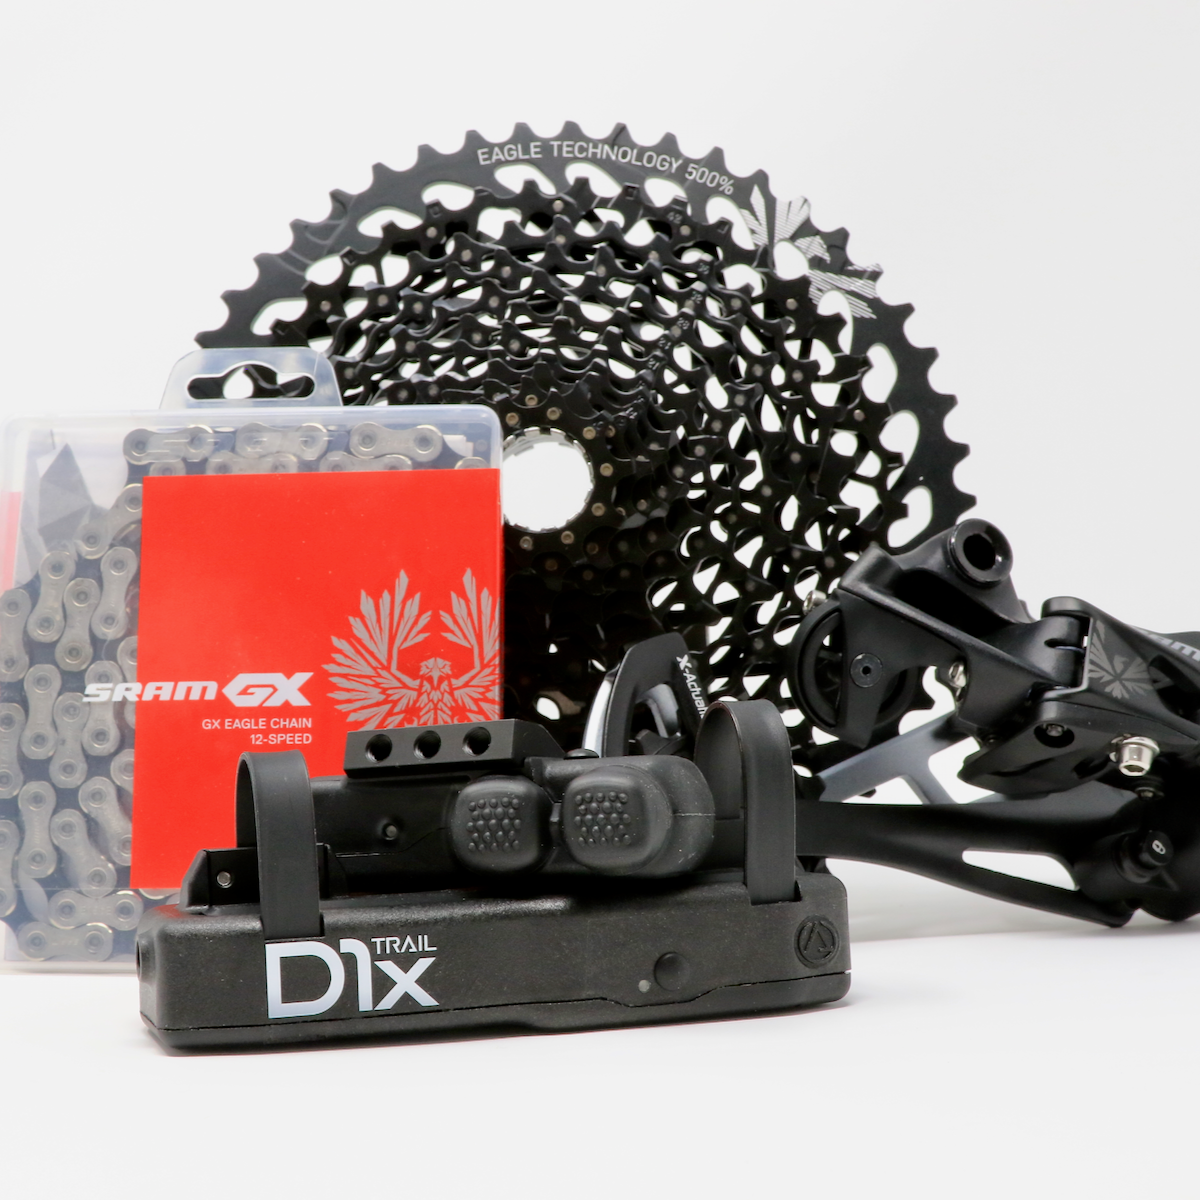 D1x Trail + SRAM Eagle kit